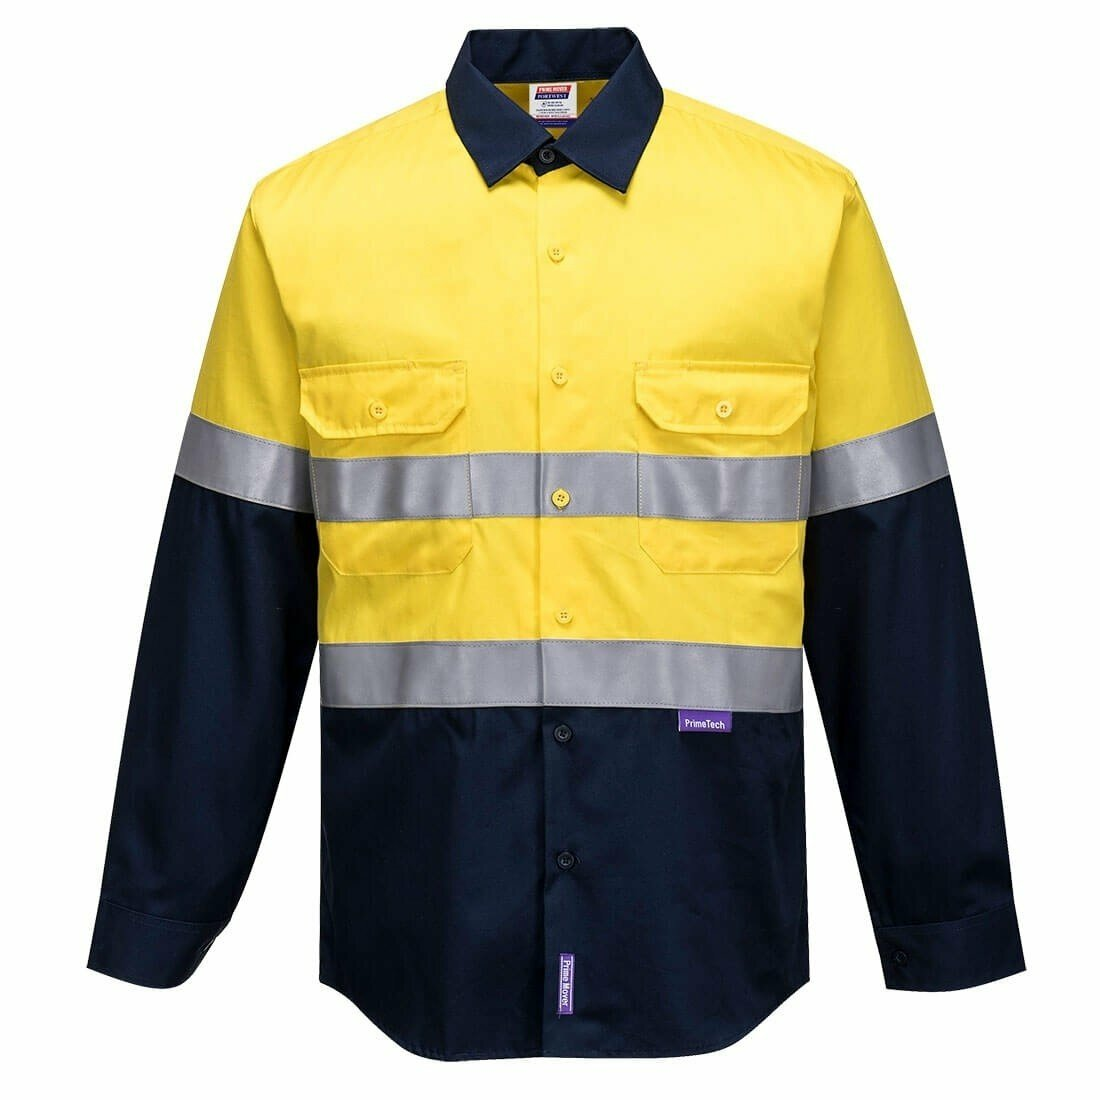 MF101 Flame Resistant Shirt